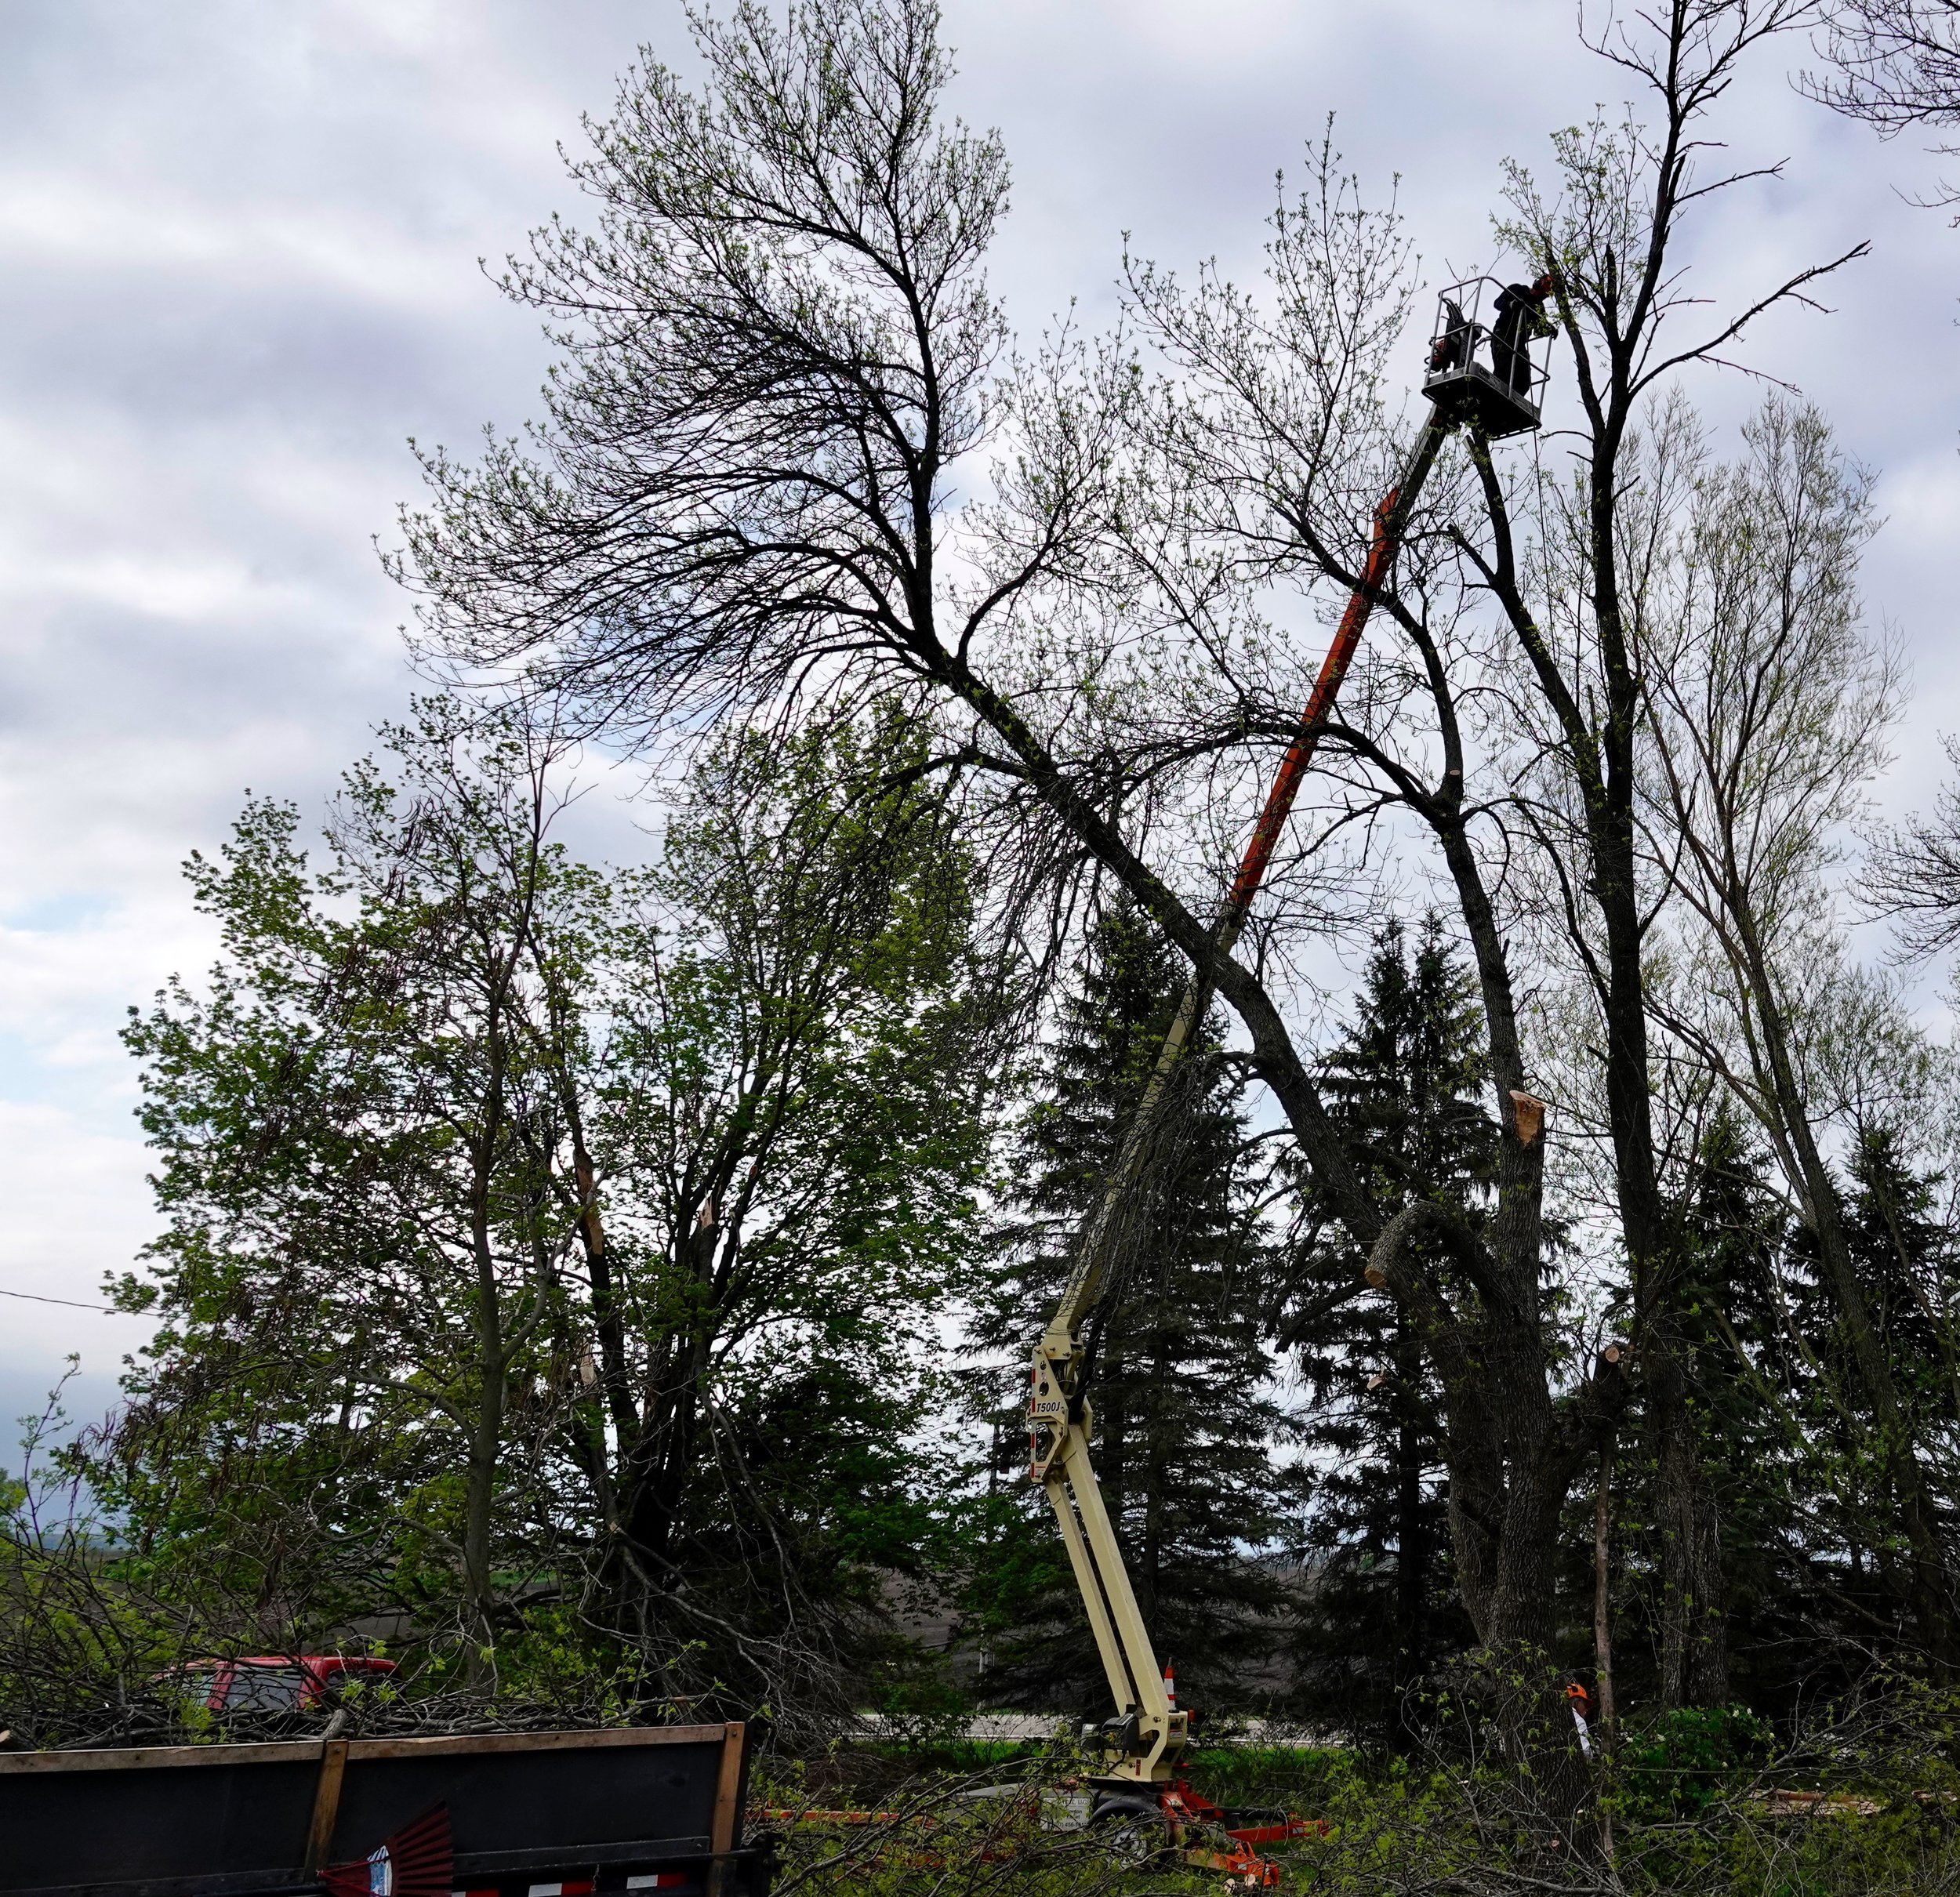 The April ice storm was hard on the yard trees.  Gordy Ebnet rose high and higher to trim damaged branches.